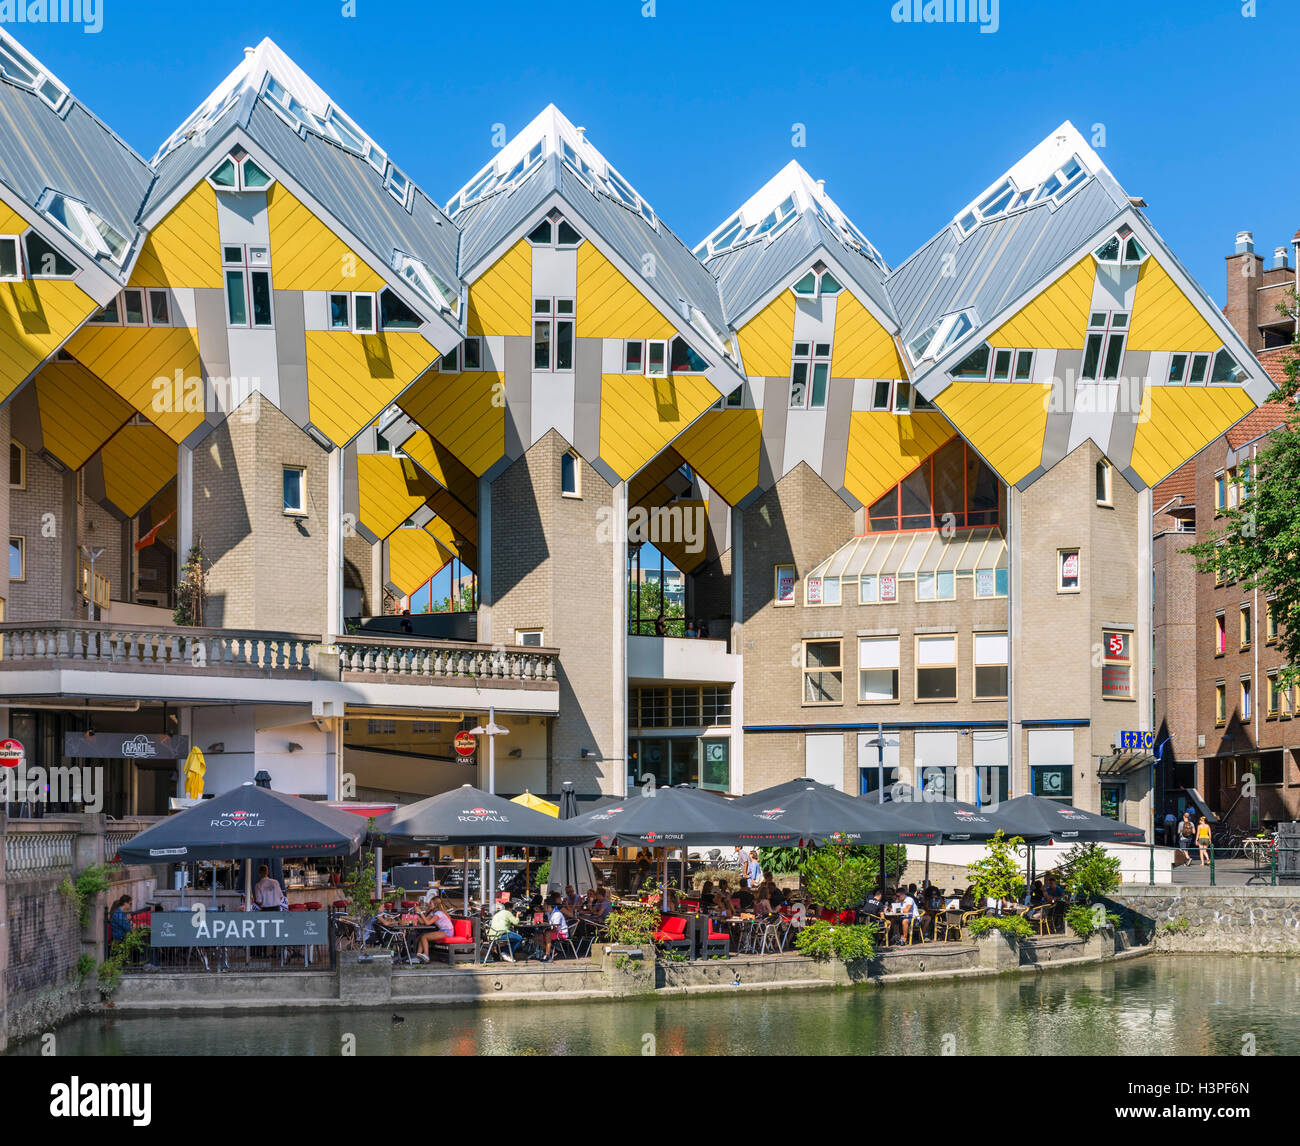 Cube Houses (Kubuswoningen) viewed from Oude Haven (Old Harbour), Blaak, Rotterdam, Netherlands - Stock Image